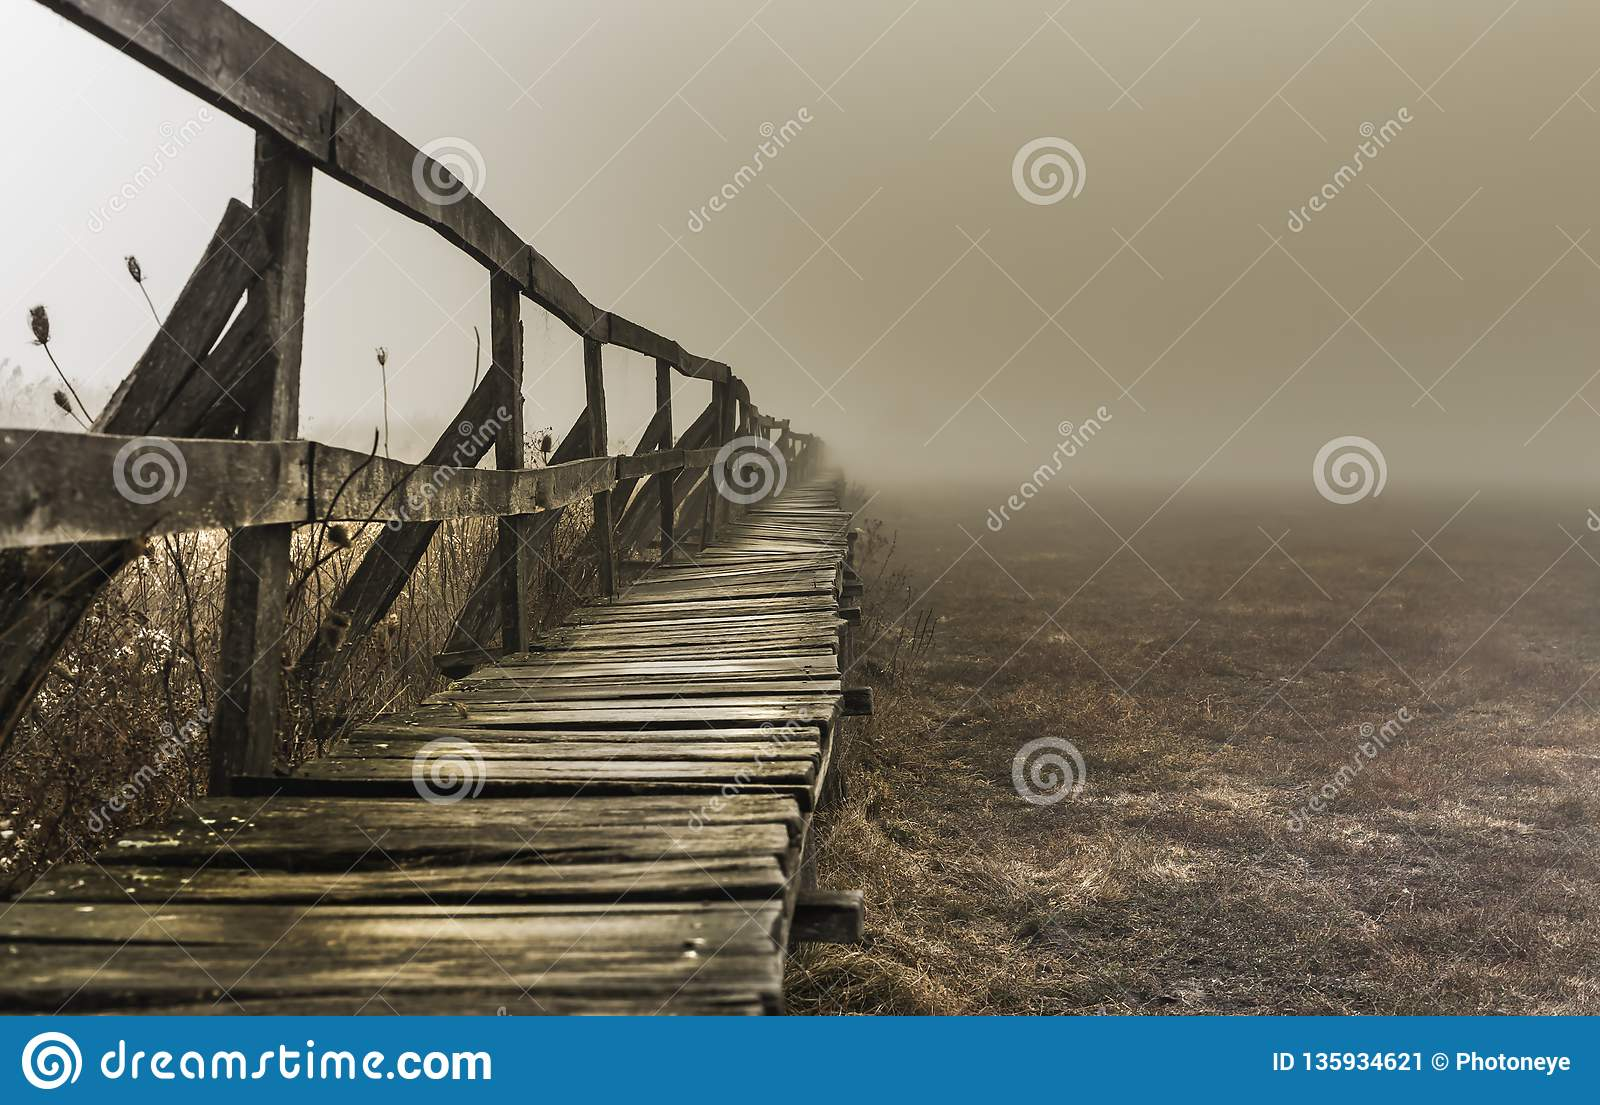 Shape of a pier near a lake, wintertime on a foggy morning, in Sic village, Transylvania